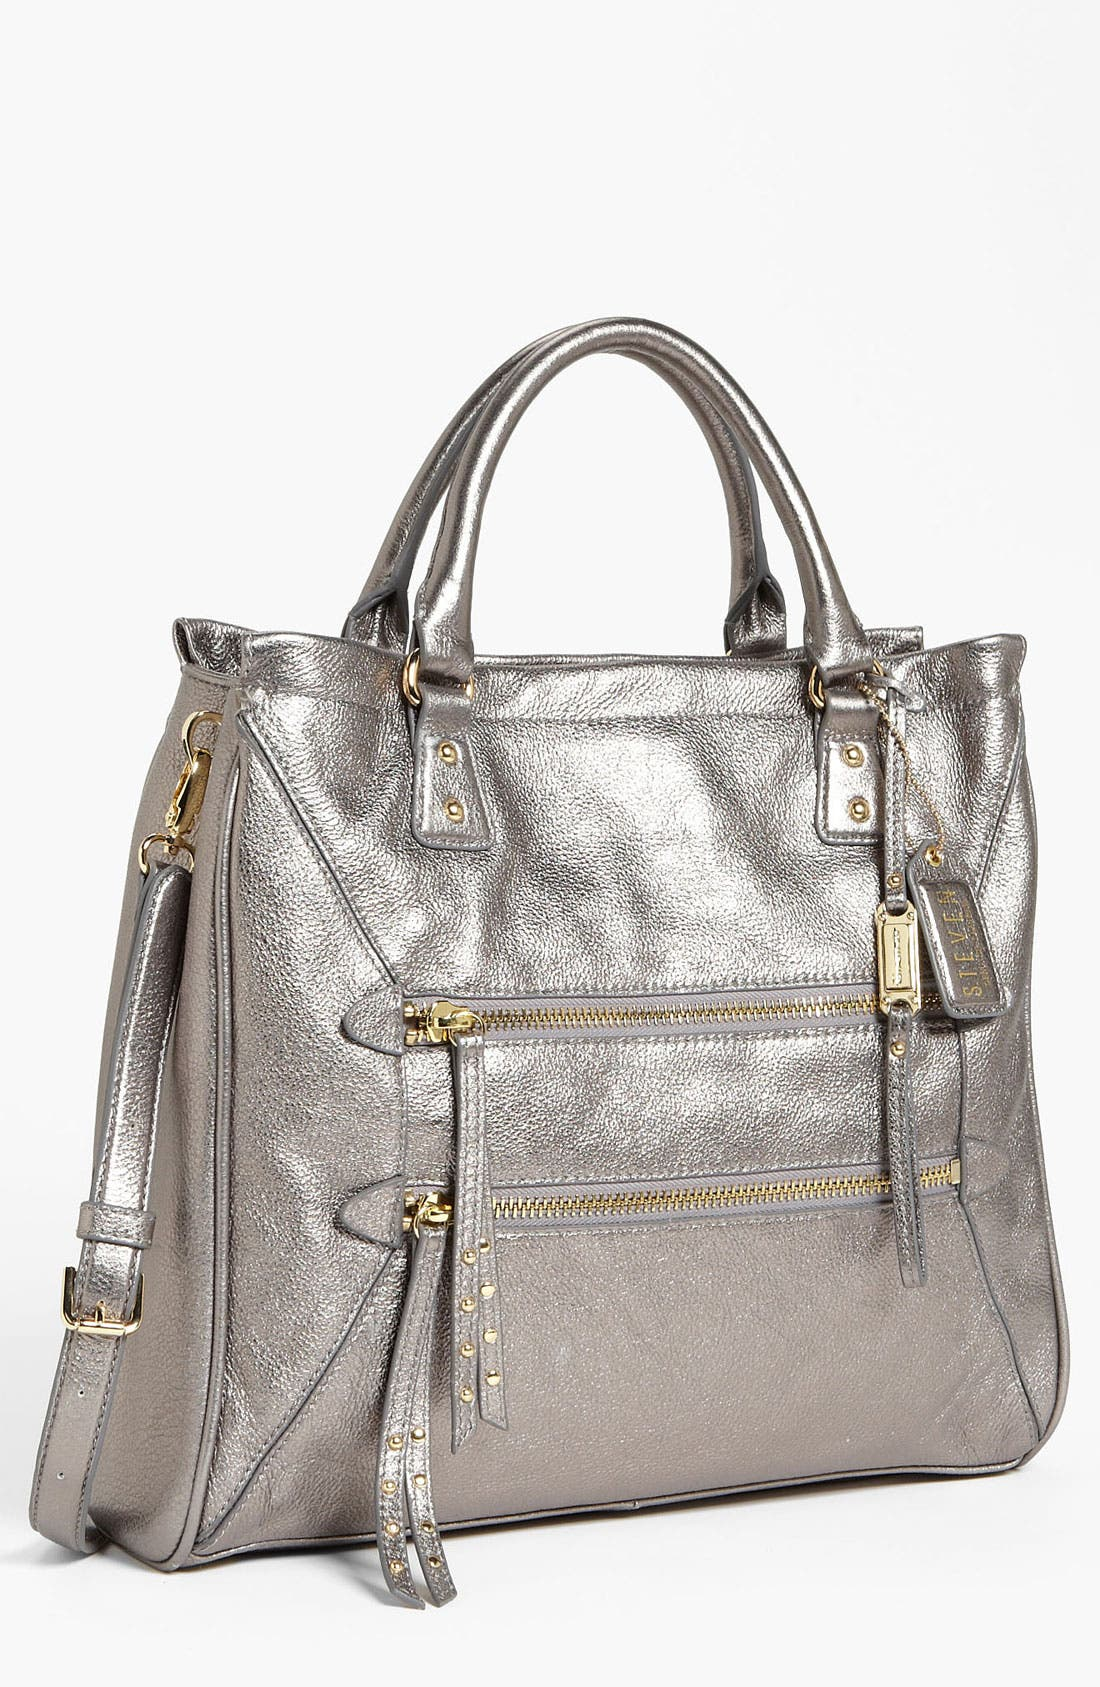 Alternate Image 1 Selected - Steven by Steve Madden 'Downtown' Tote